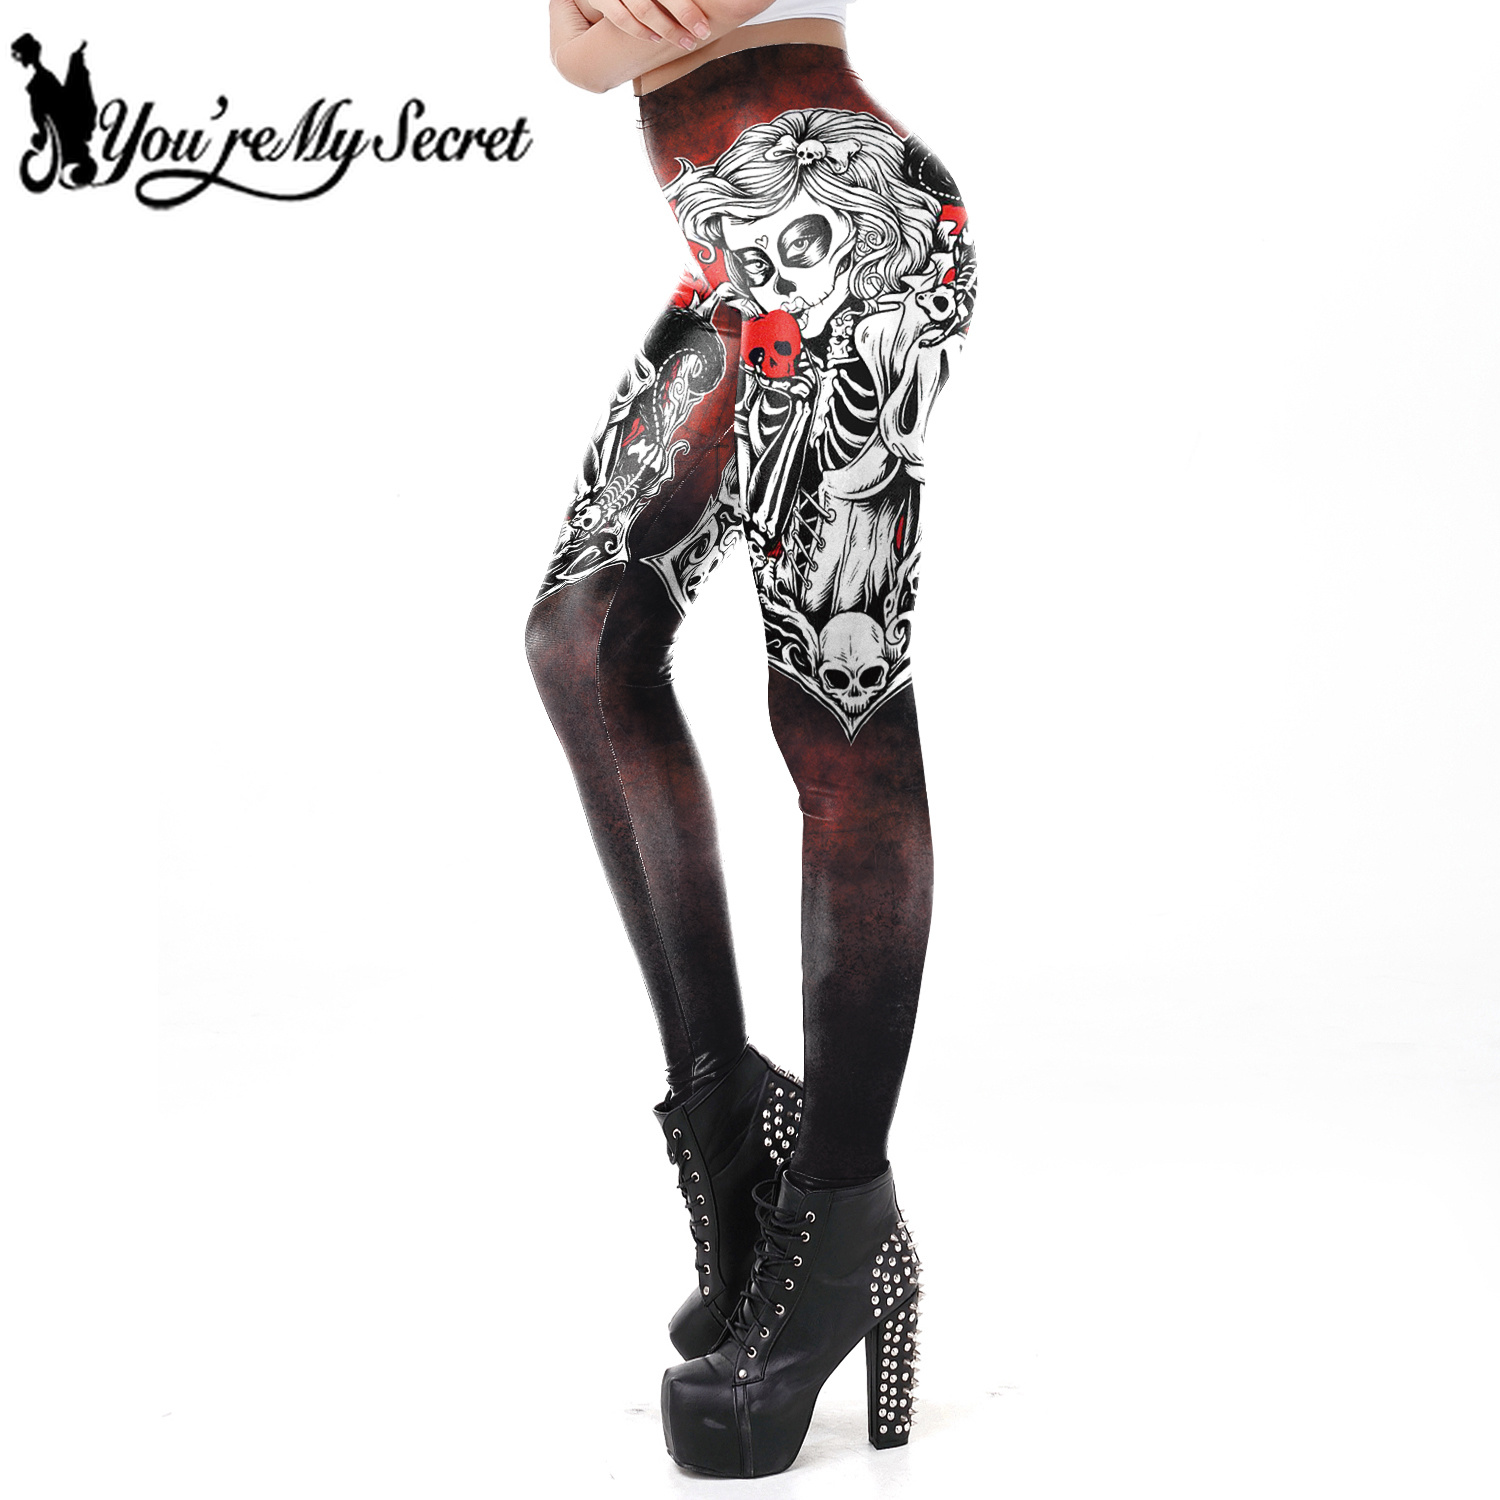 [You're My Secret] 2018 Winter The Dead Girl Super Fantastic Women   Legging   Sugar Skull Fitness Workout Gothic Style Ankle Pants